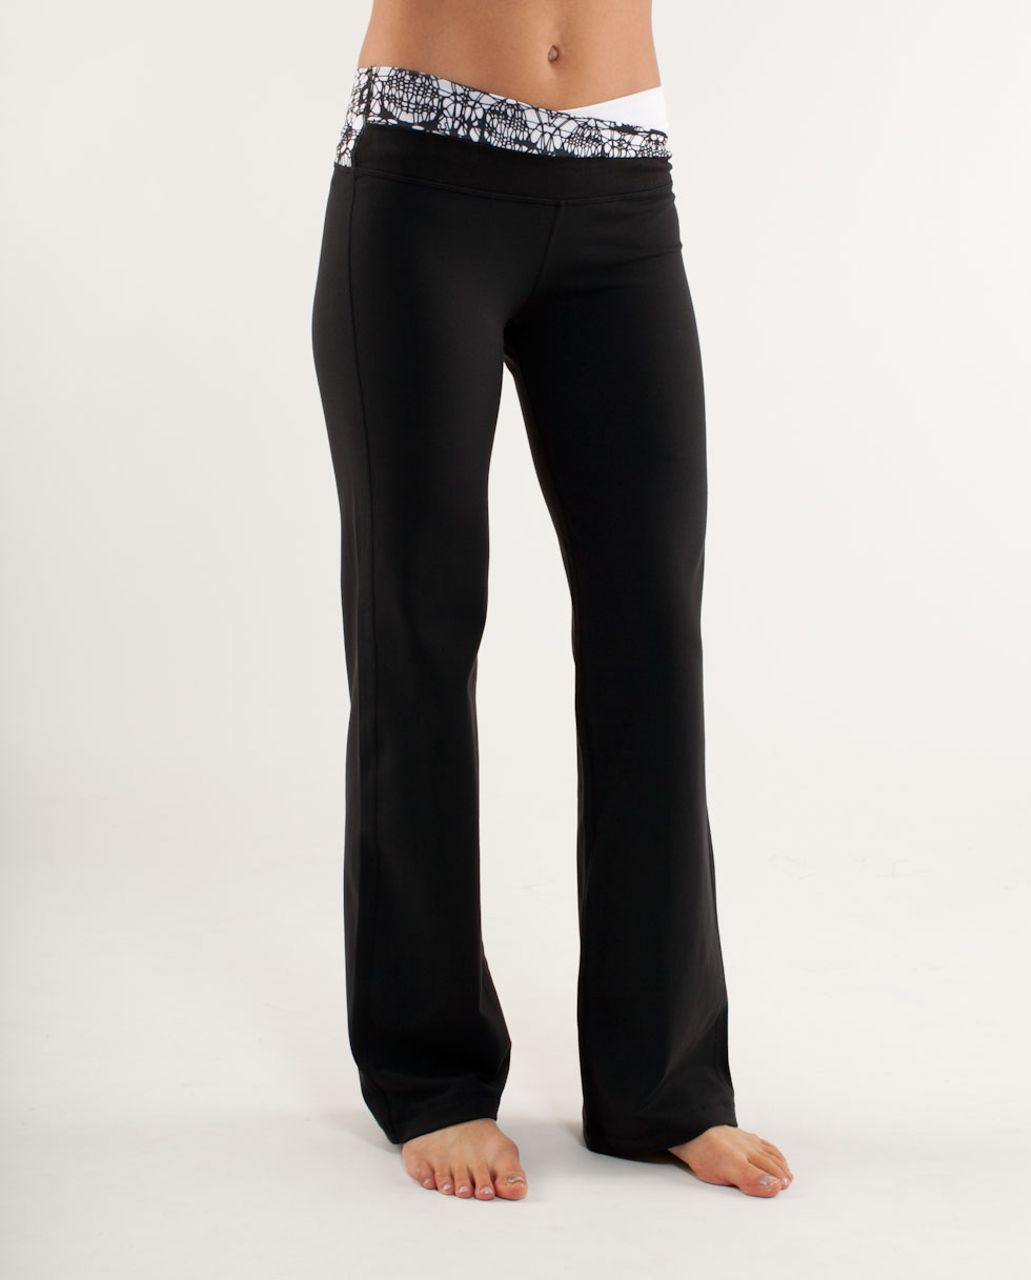 Lululemon Astro Pant (Tall) - Black /  Black Glacier Lace Embossed /  White Black Glacier Lace